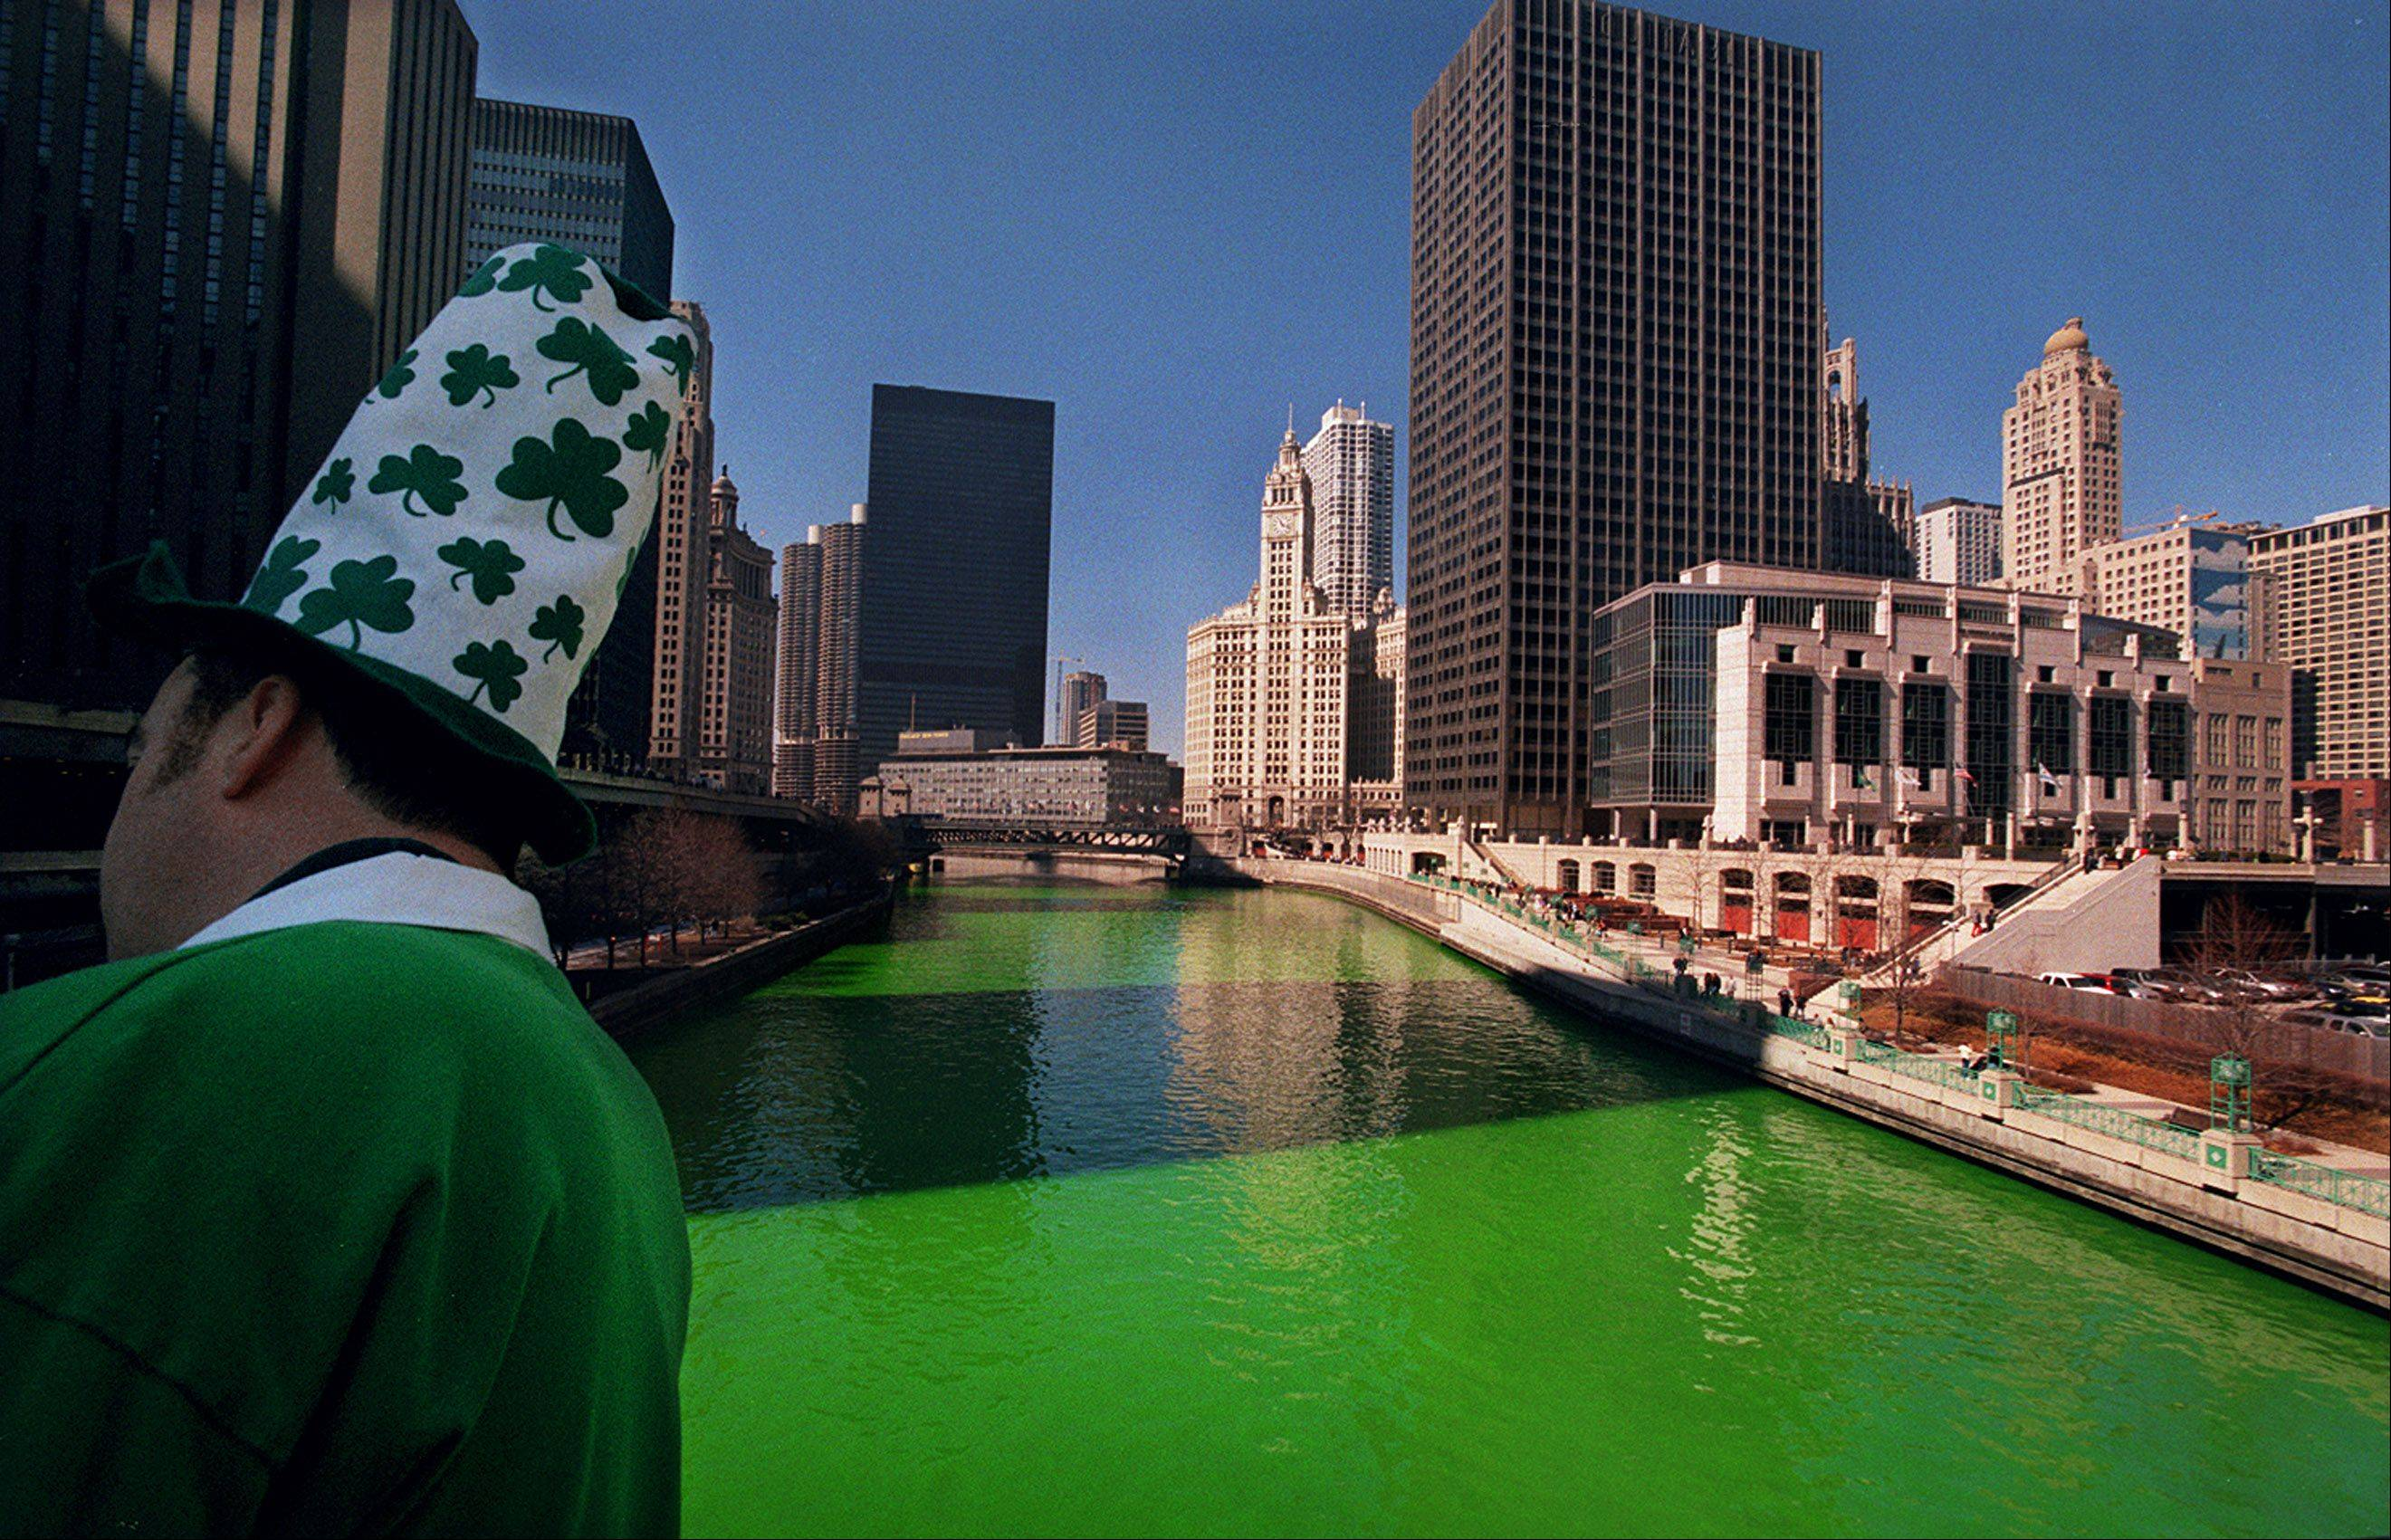 The Chicago River runs green for the annual St. Patrick's Day Parade in Chicago.